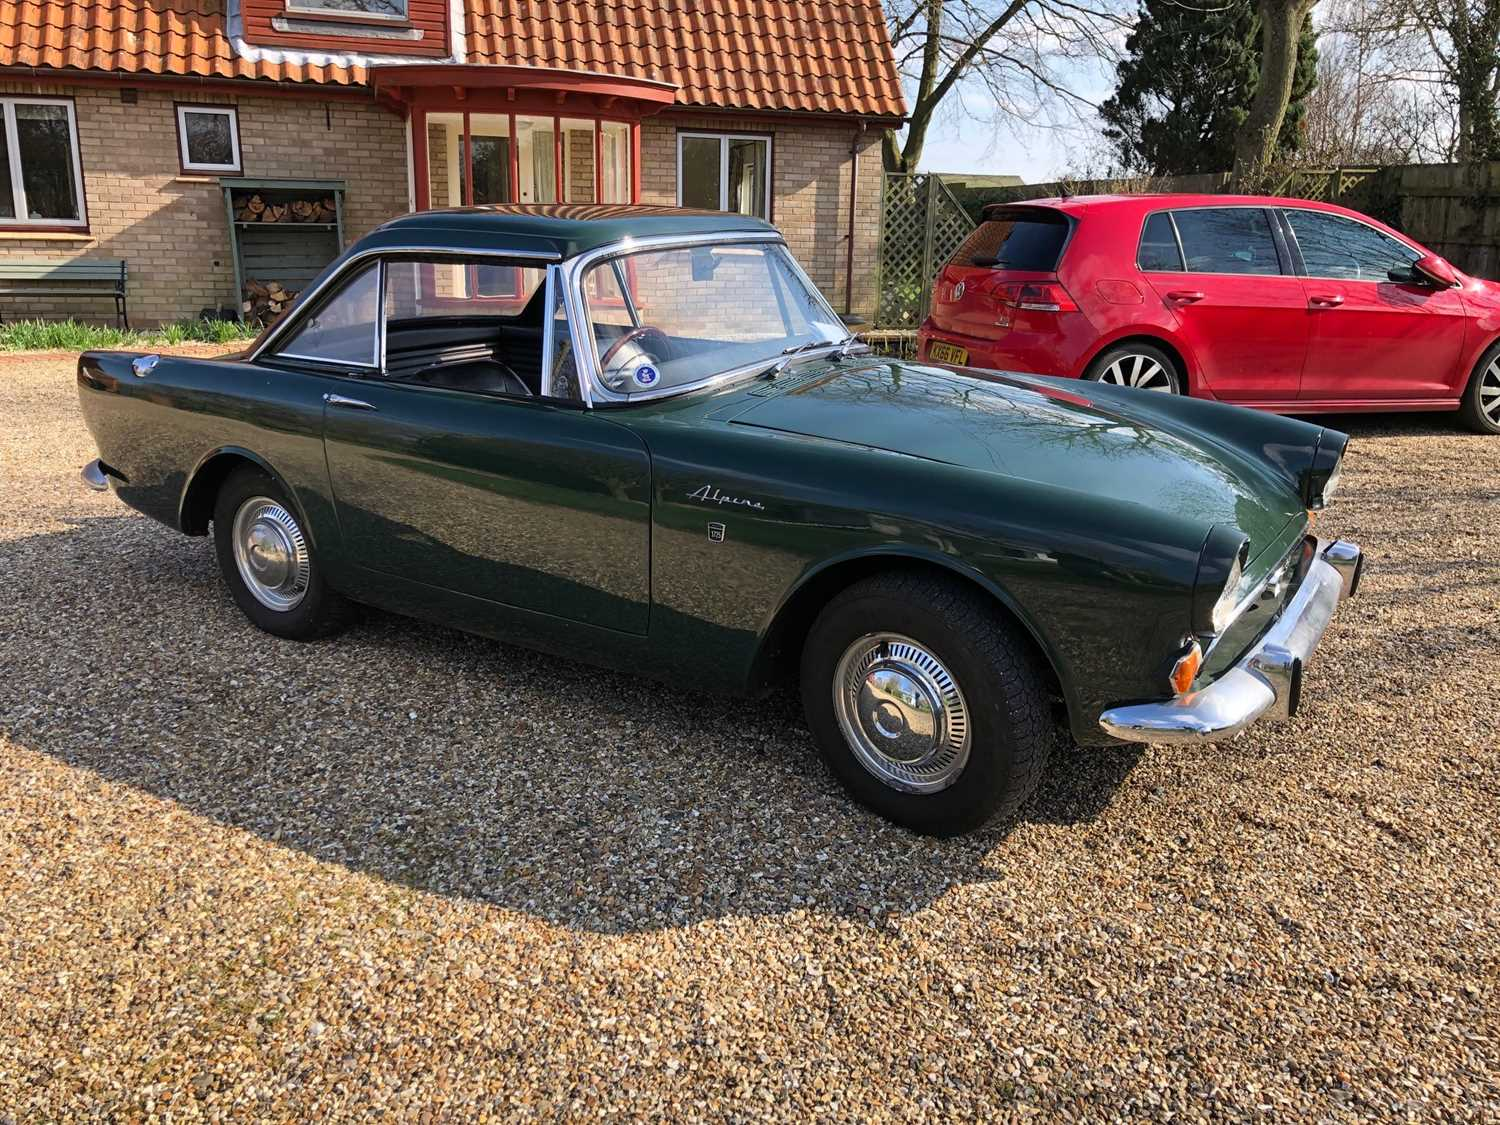 A 1968 Sunbeam Alpine Series V GT Reg No. NLY978F Chassis No. B395016307GTOD Green with Black